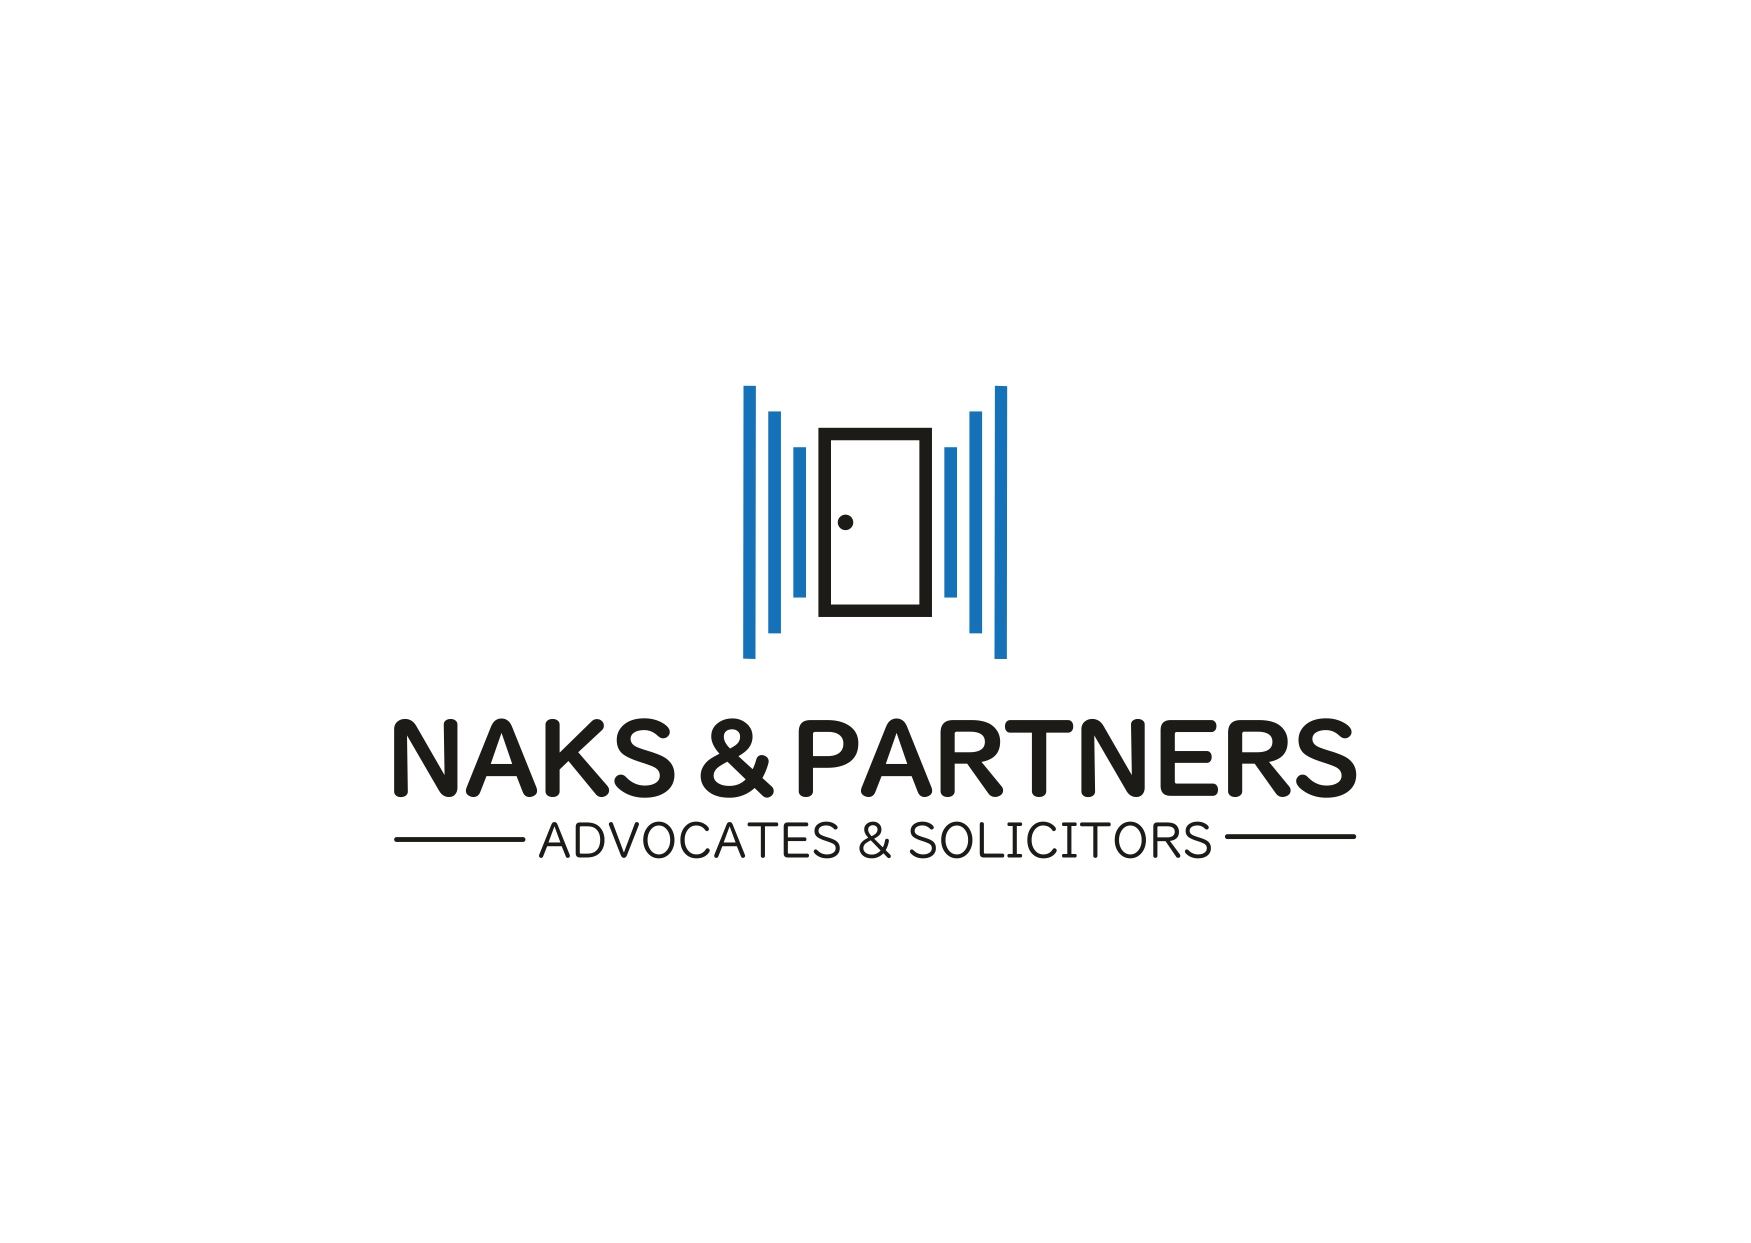 Naks & Partners (Advocates & Solicitors)